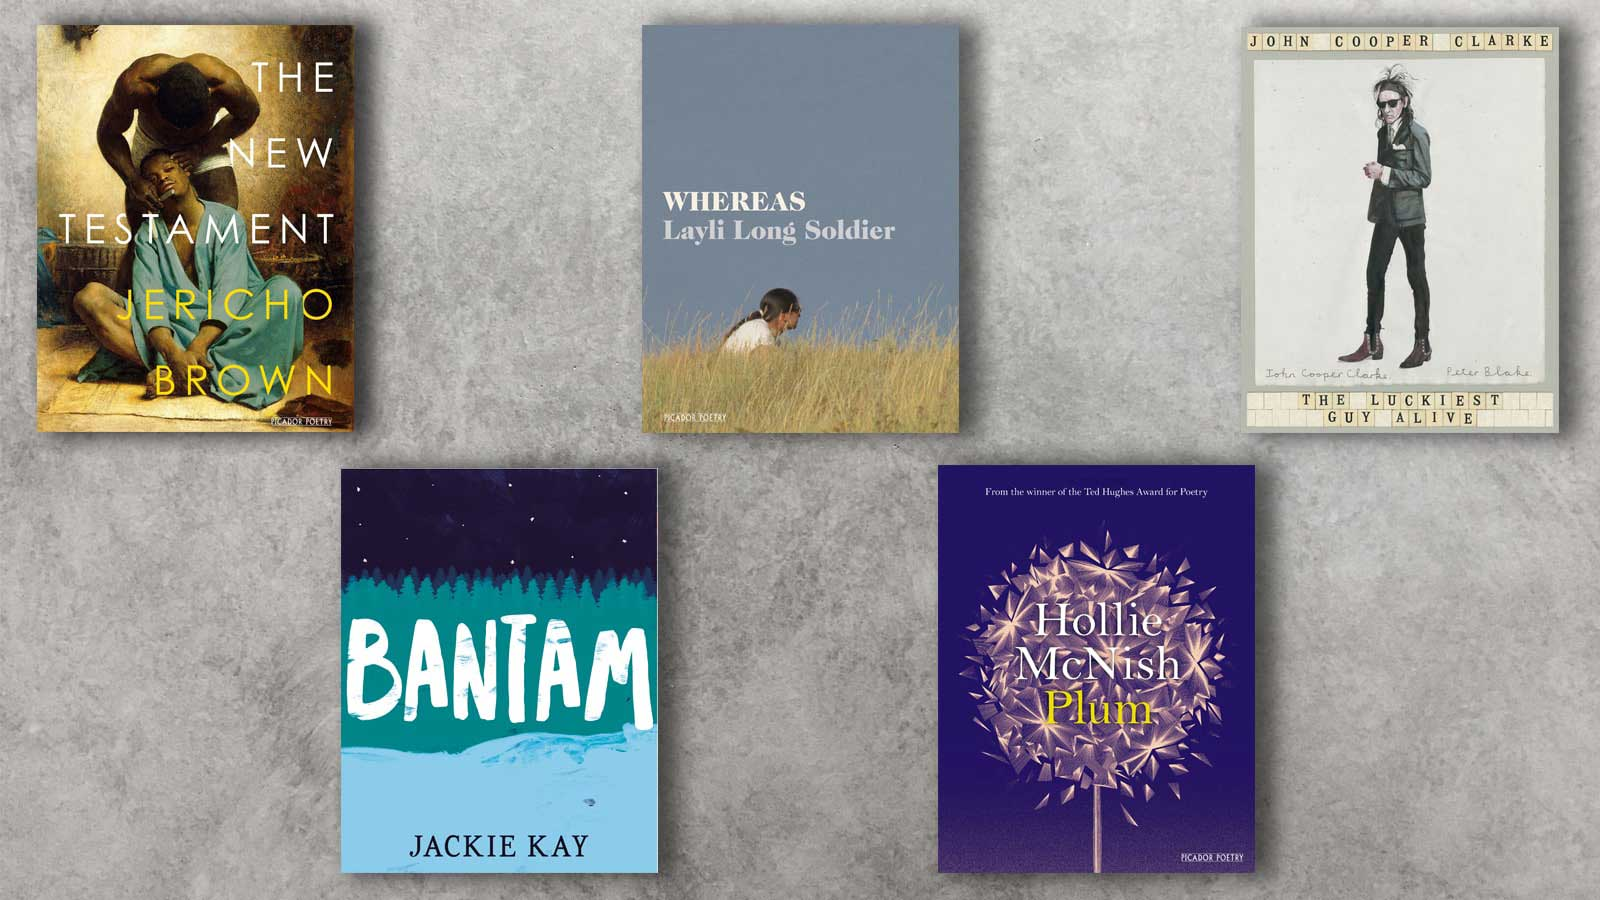 Covers of The New Testament, Whereas, Bantam, Plum and The Luckiest Guy Alive on a grey concrete background